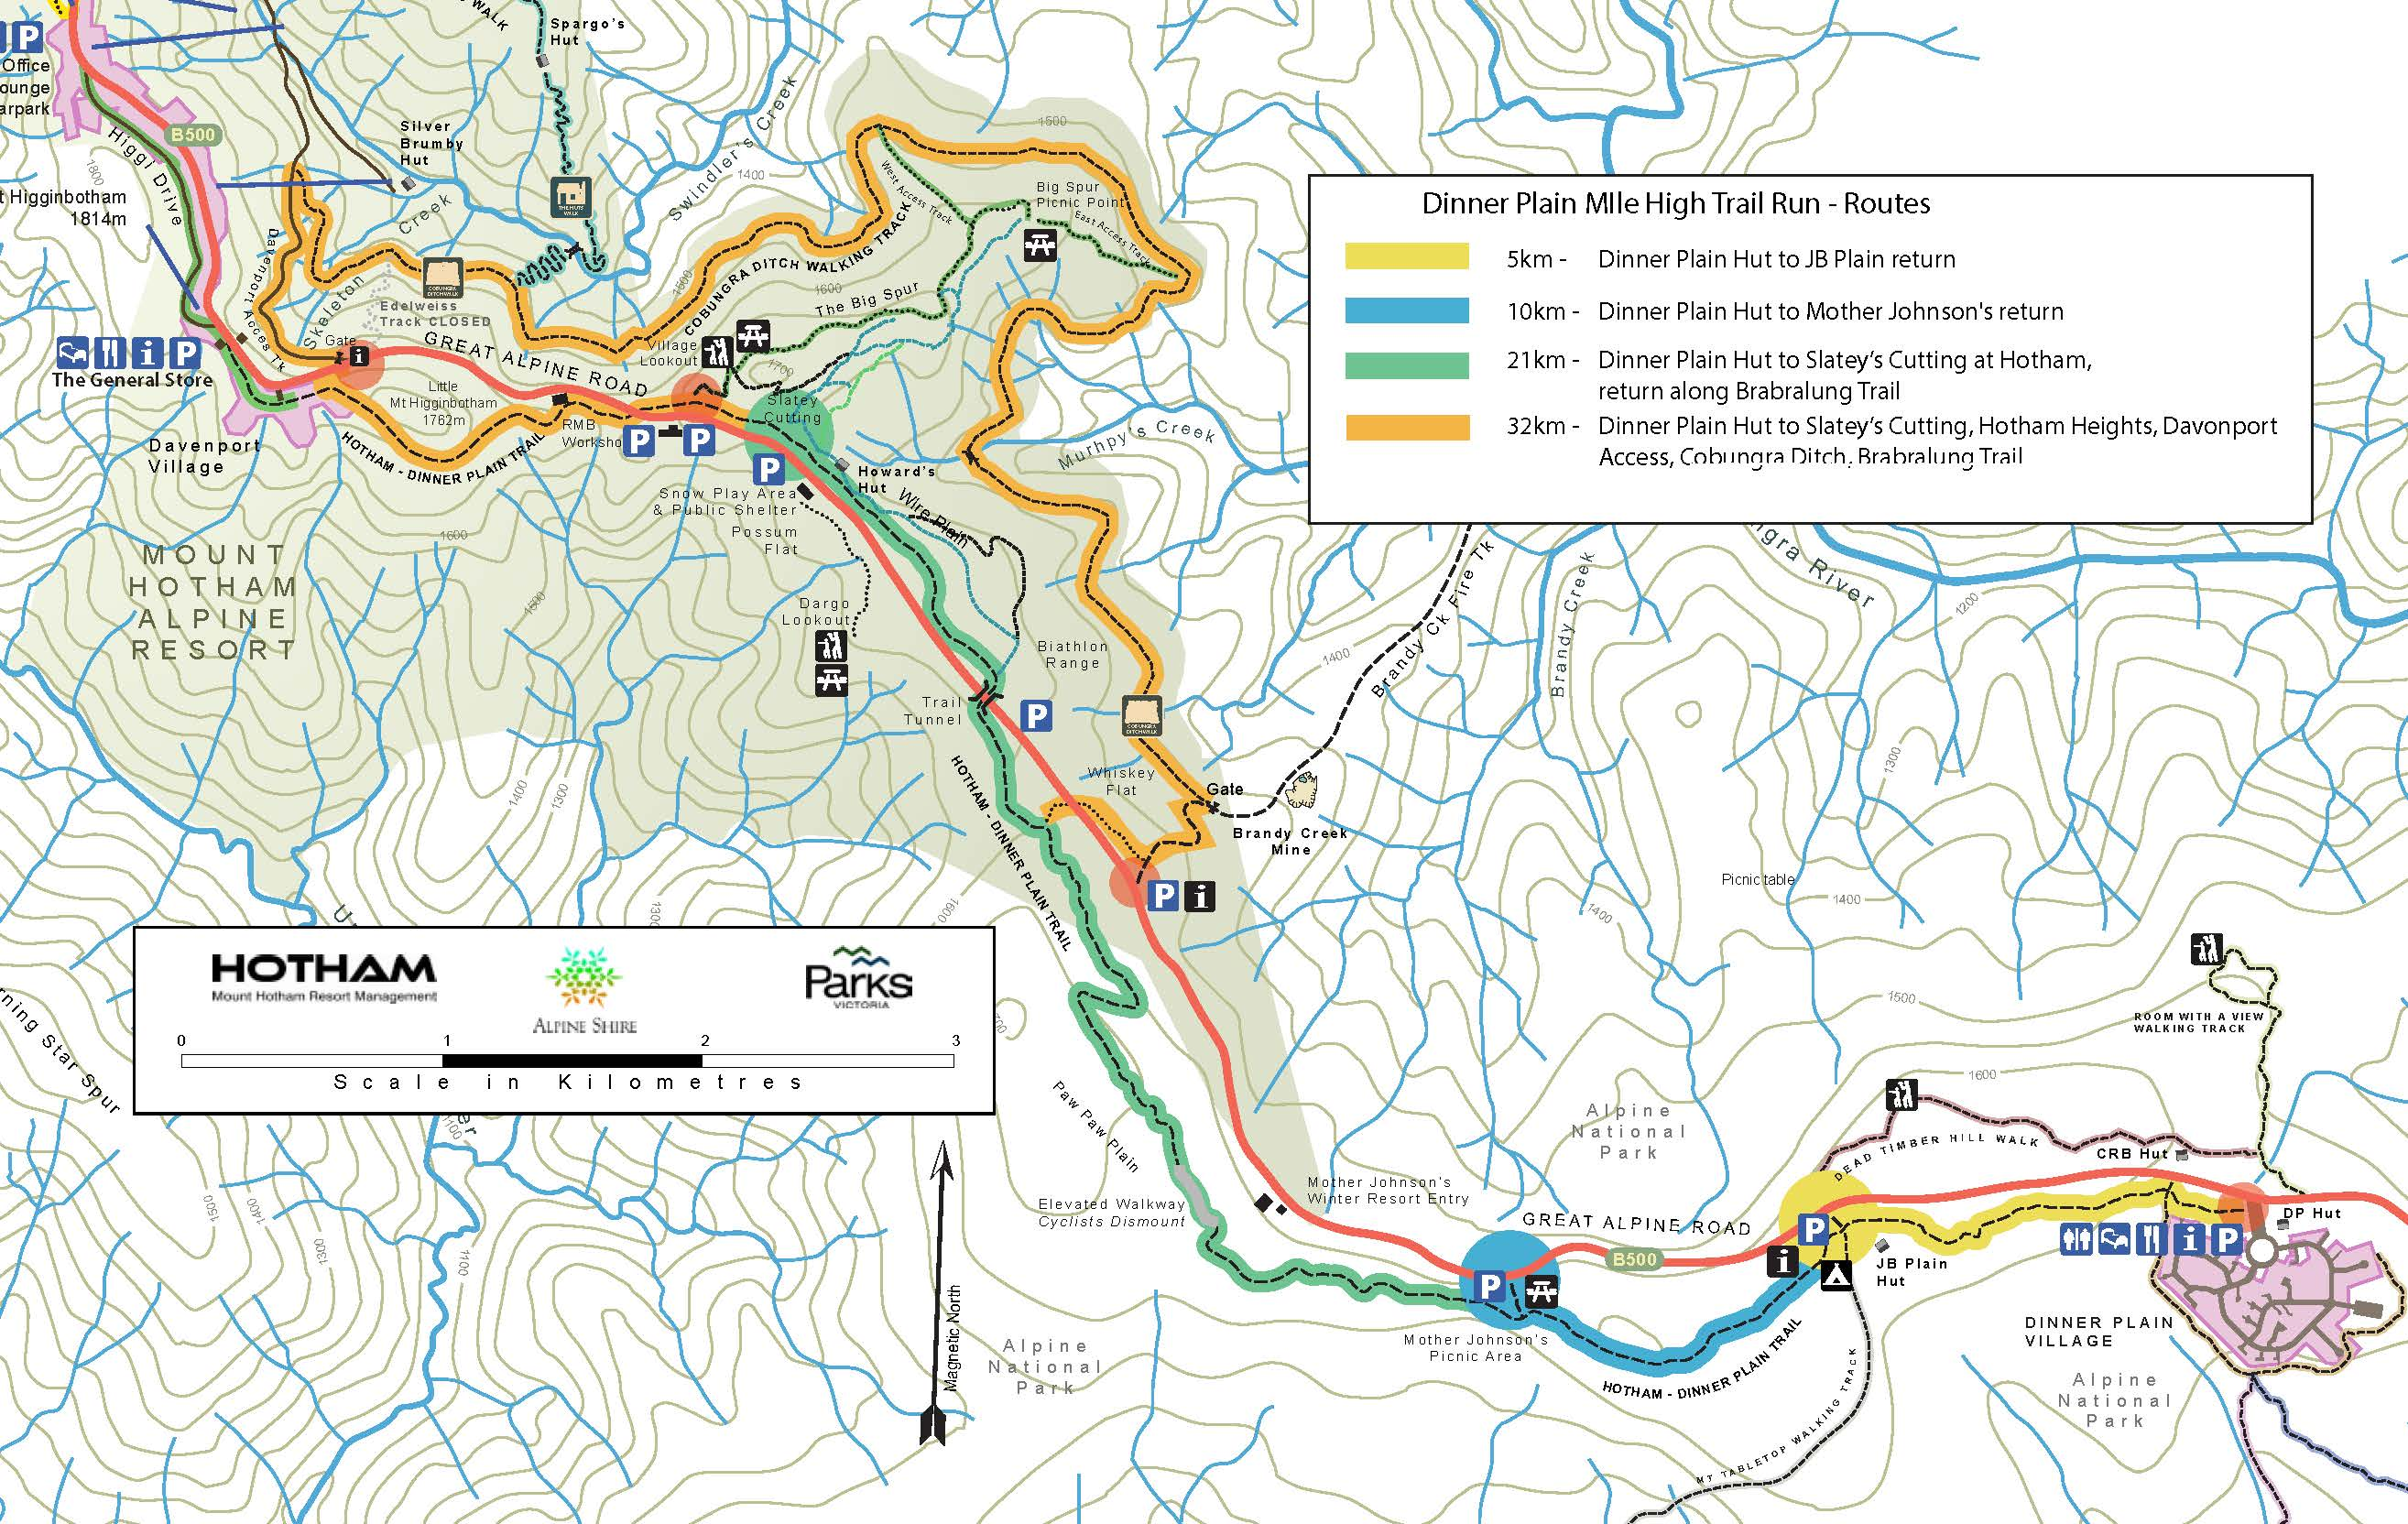 Dinner Plain Mile High Trail Run map s